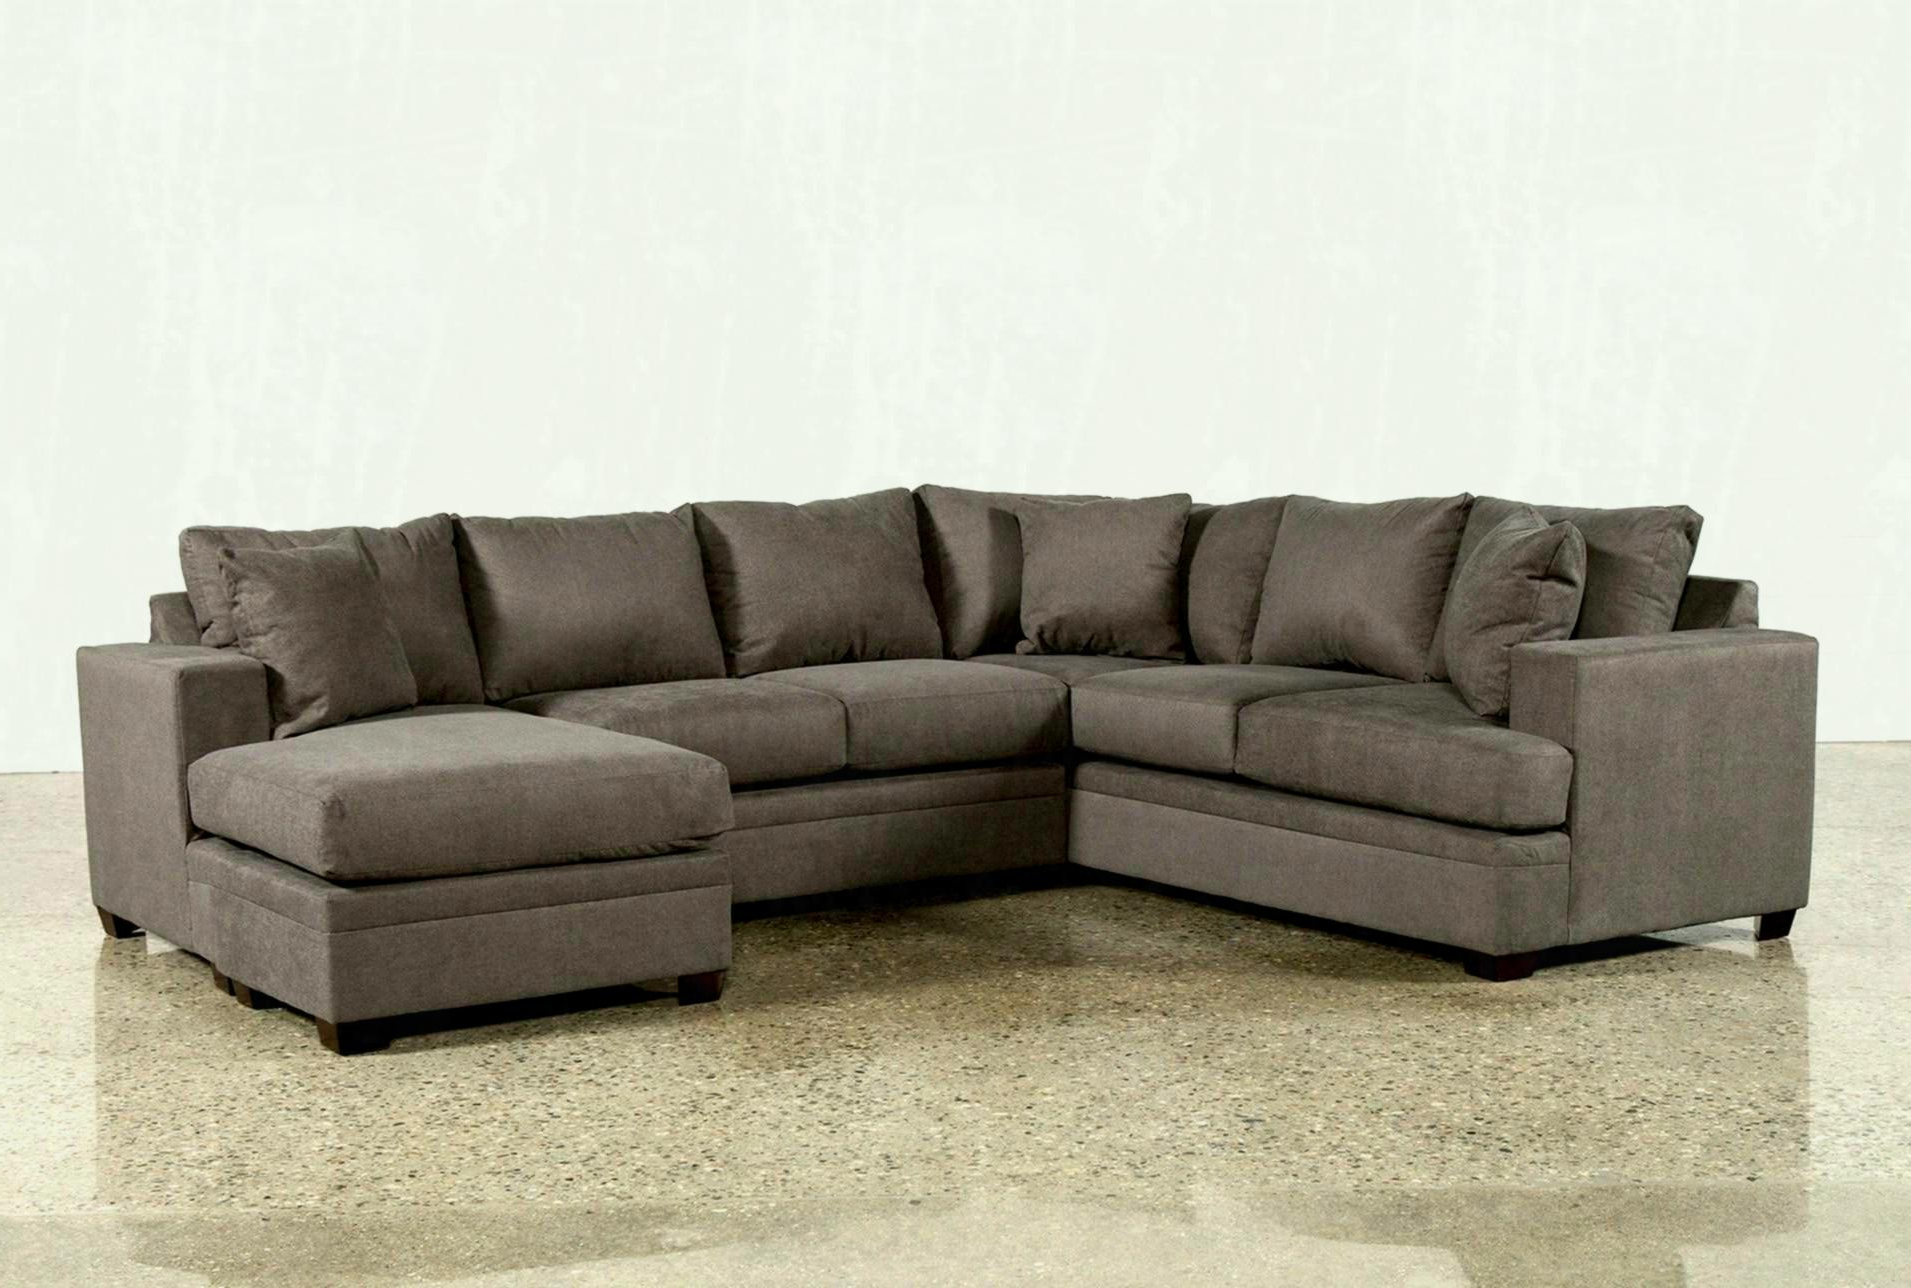 Widely Used Aquarius Light Grey 2 Piece Sectionals With Raf Chaise Throughout Added To Cart Kerri Piece Sectional W Raf Chaise Living Spaces (View 14 of 20)